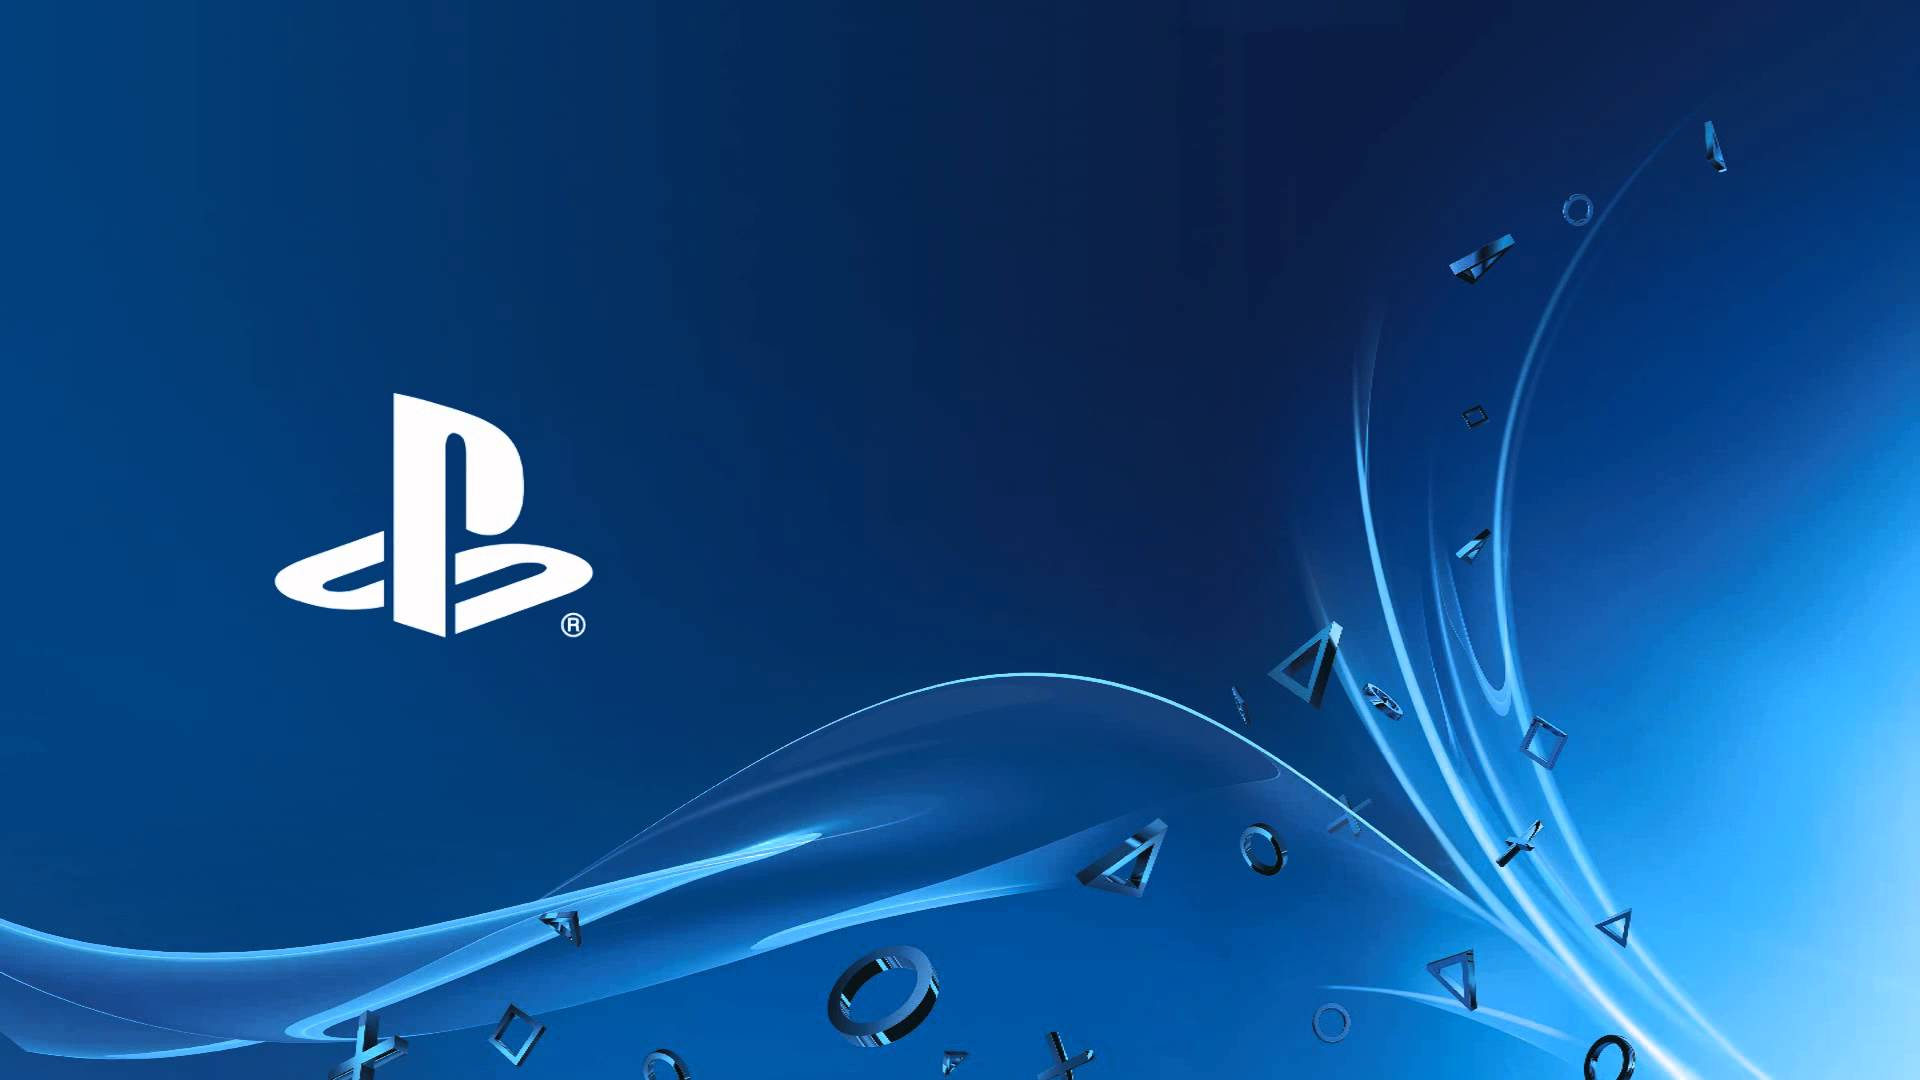 PlayStation Preview Program